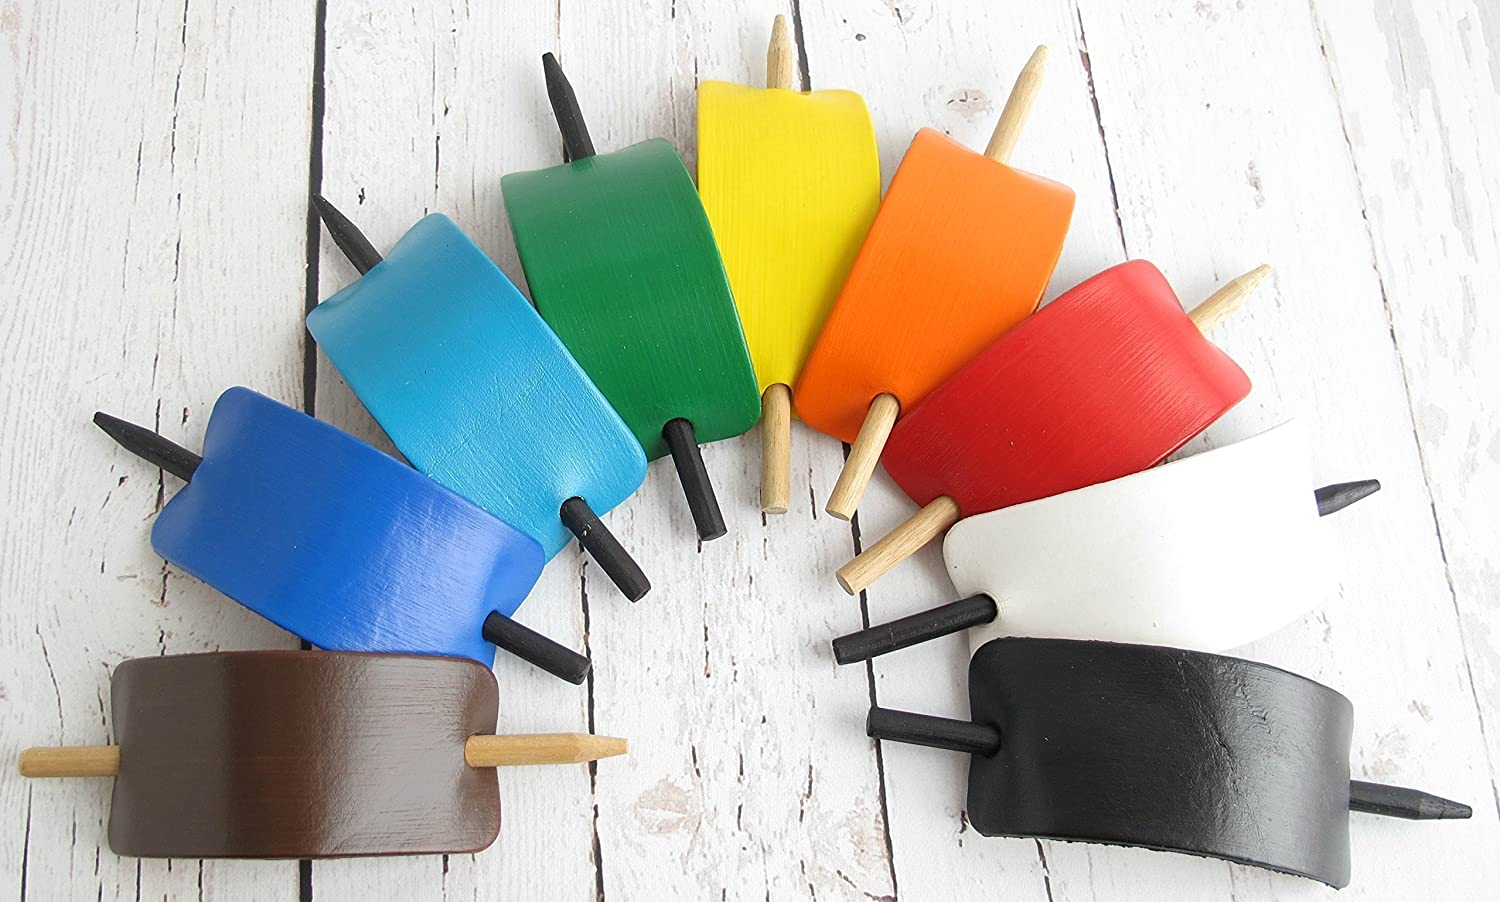 Hair Barrettes, Leather Hair Accessories, Colorful Leather Hair Stick Barrettes, Leather Hair Clips, Leather Stick Barrette, Ponytail Cuff, Hair Bun Holder